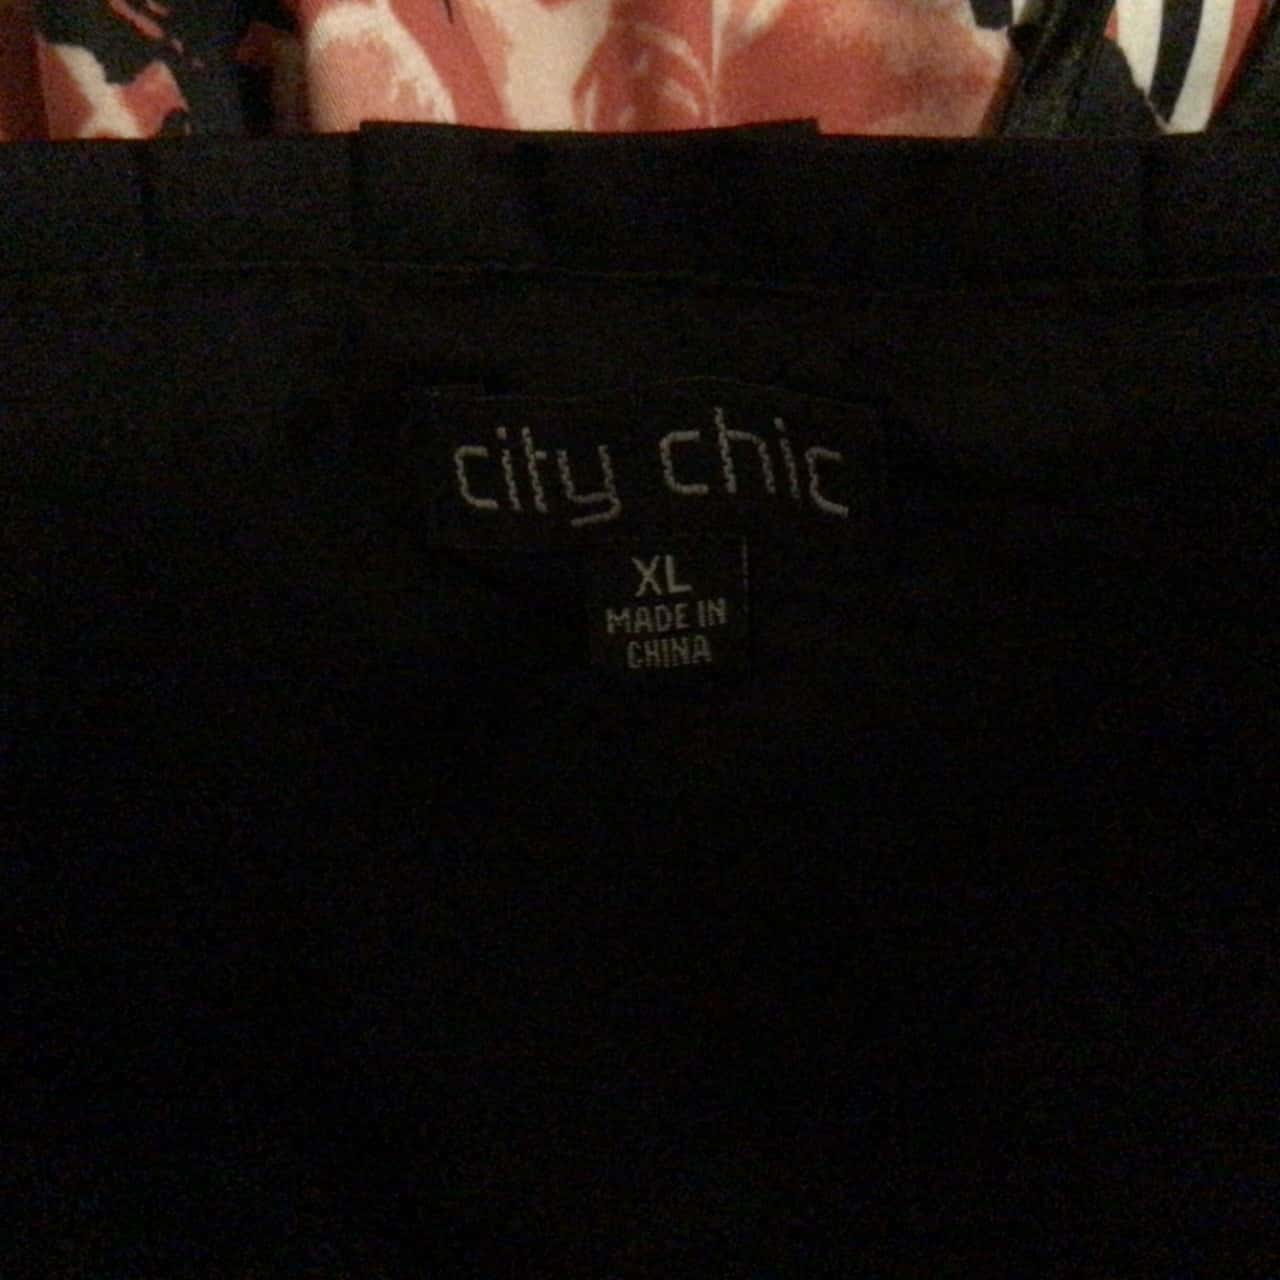 NWOT Womens CITY CHIC DRESS with CORSET LACE UP BACK Formal Dress/Cocktail Dress/Midi Dress Black /Red/White